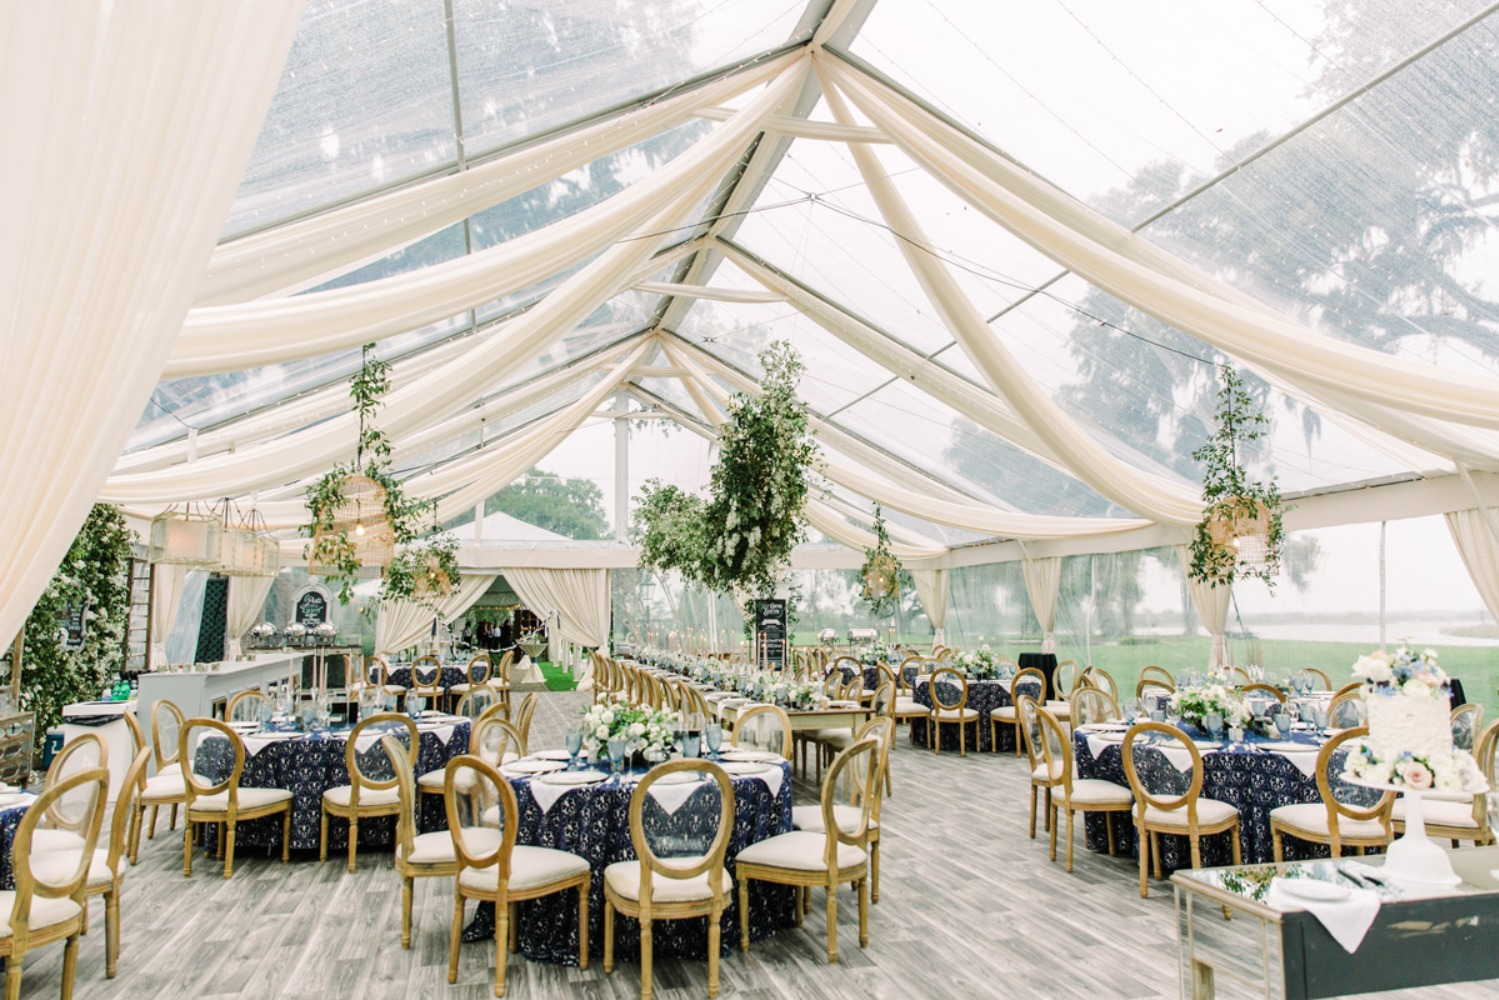 Stylish tent wedding reception